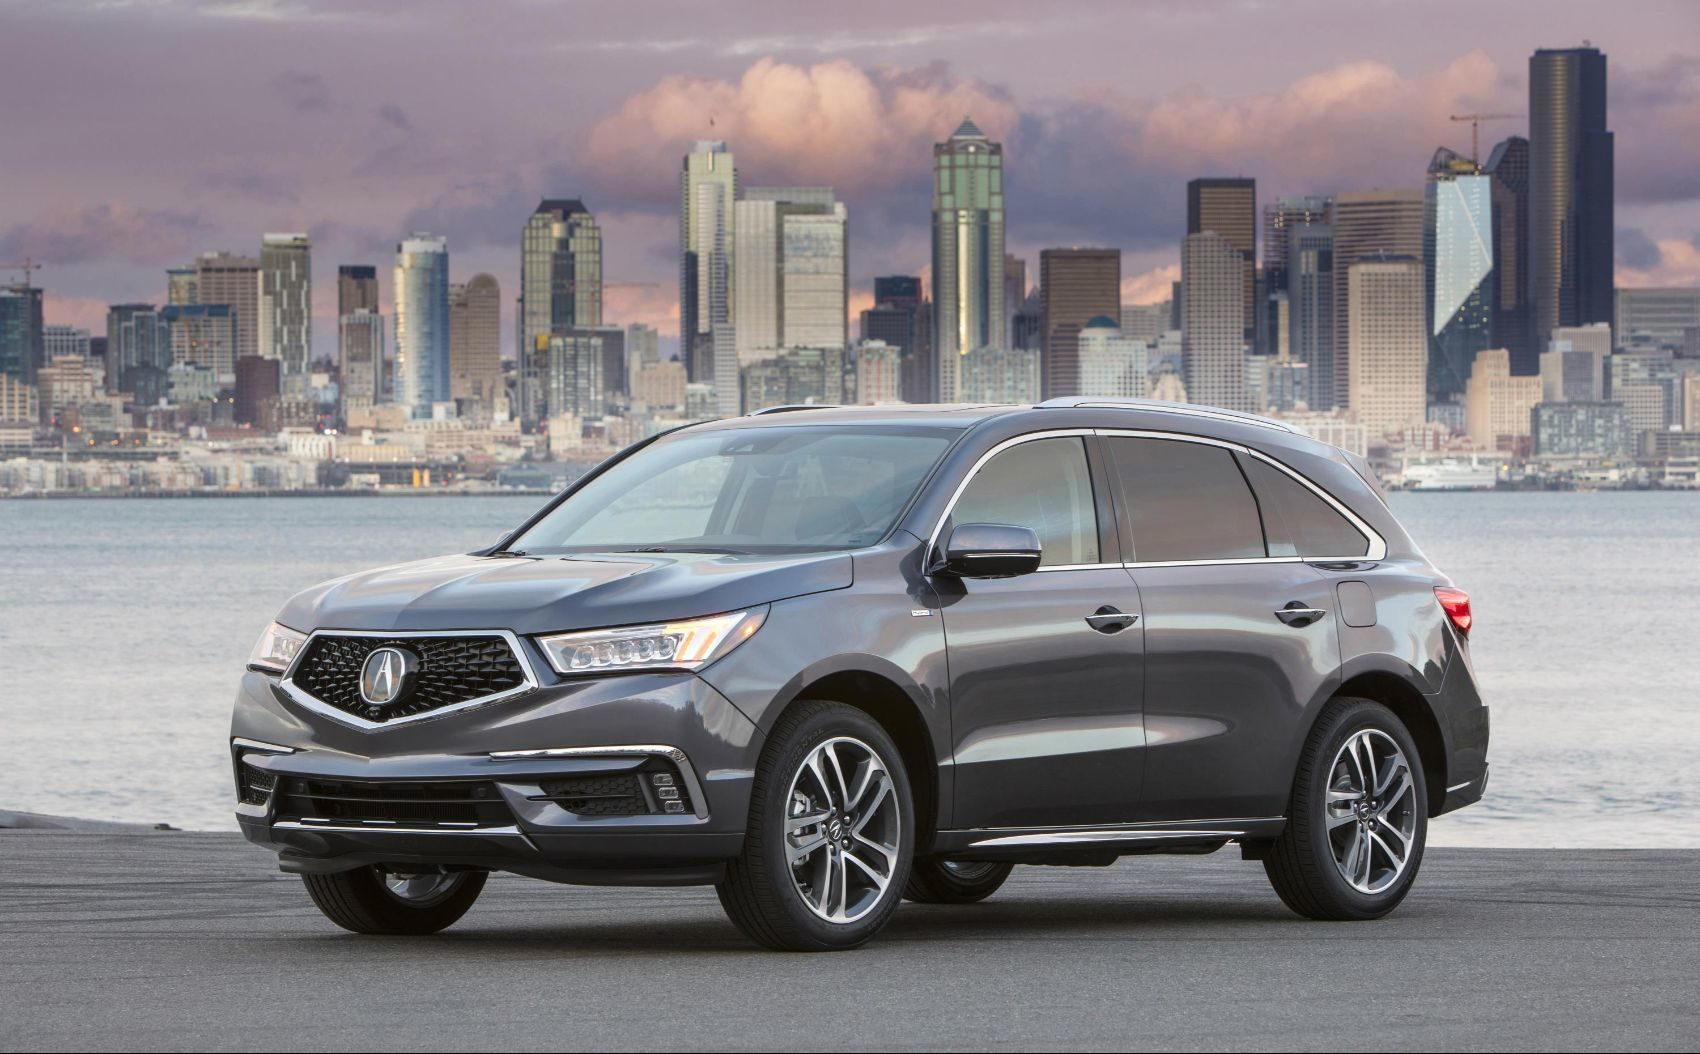 83 Great When Will 2020 Acura Mdx Be Available Configurations with When Will 2020 Acura Mdx Be Available